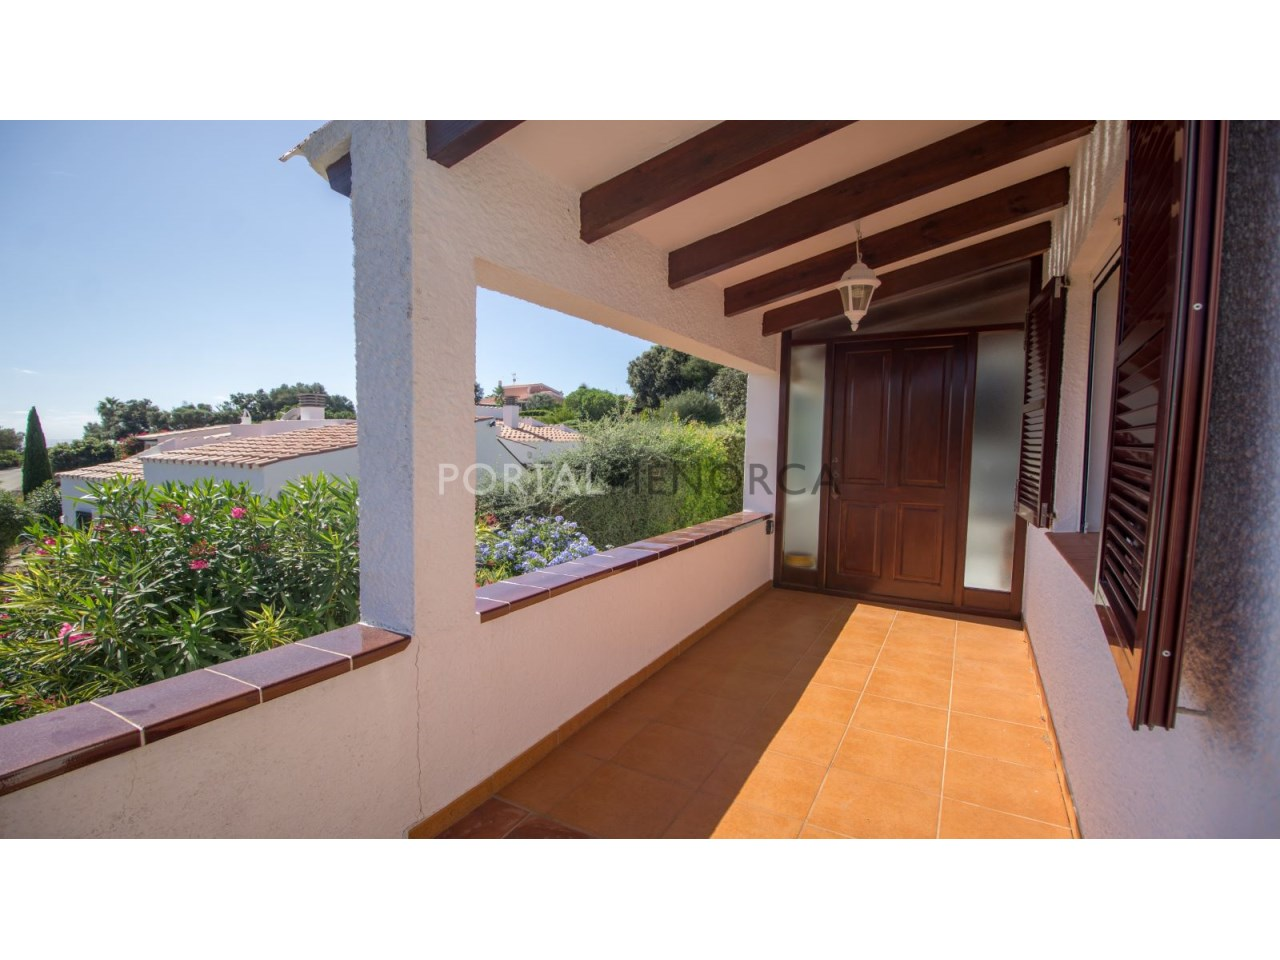 House for sale in Menorca next to the sea